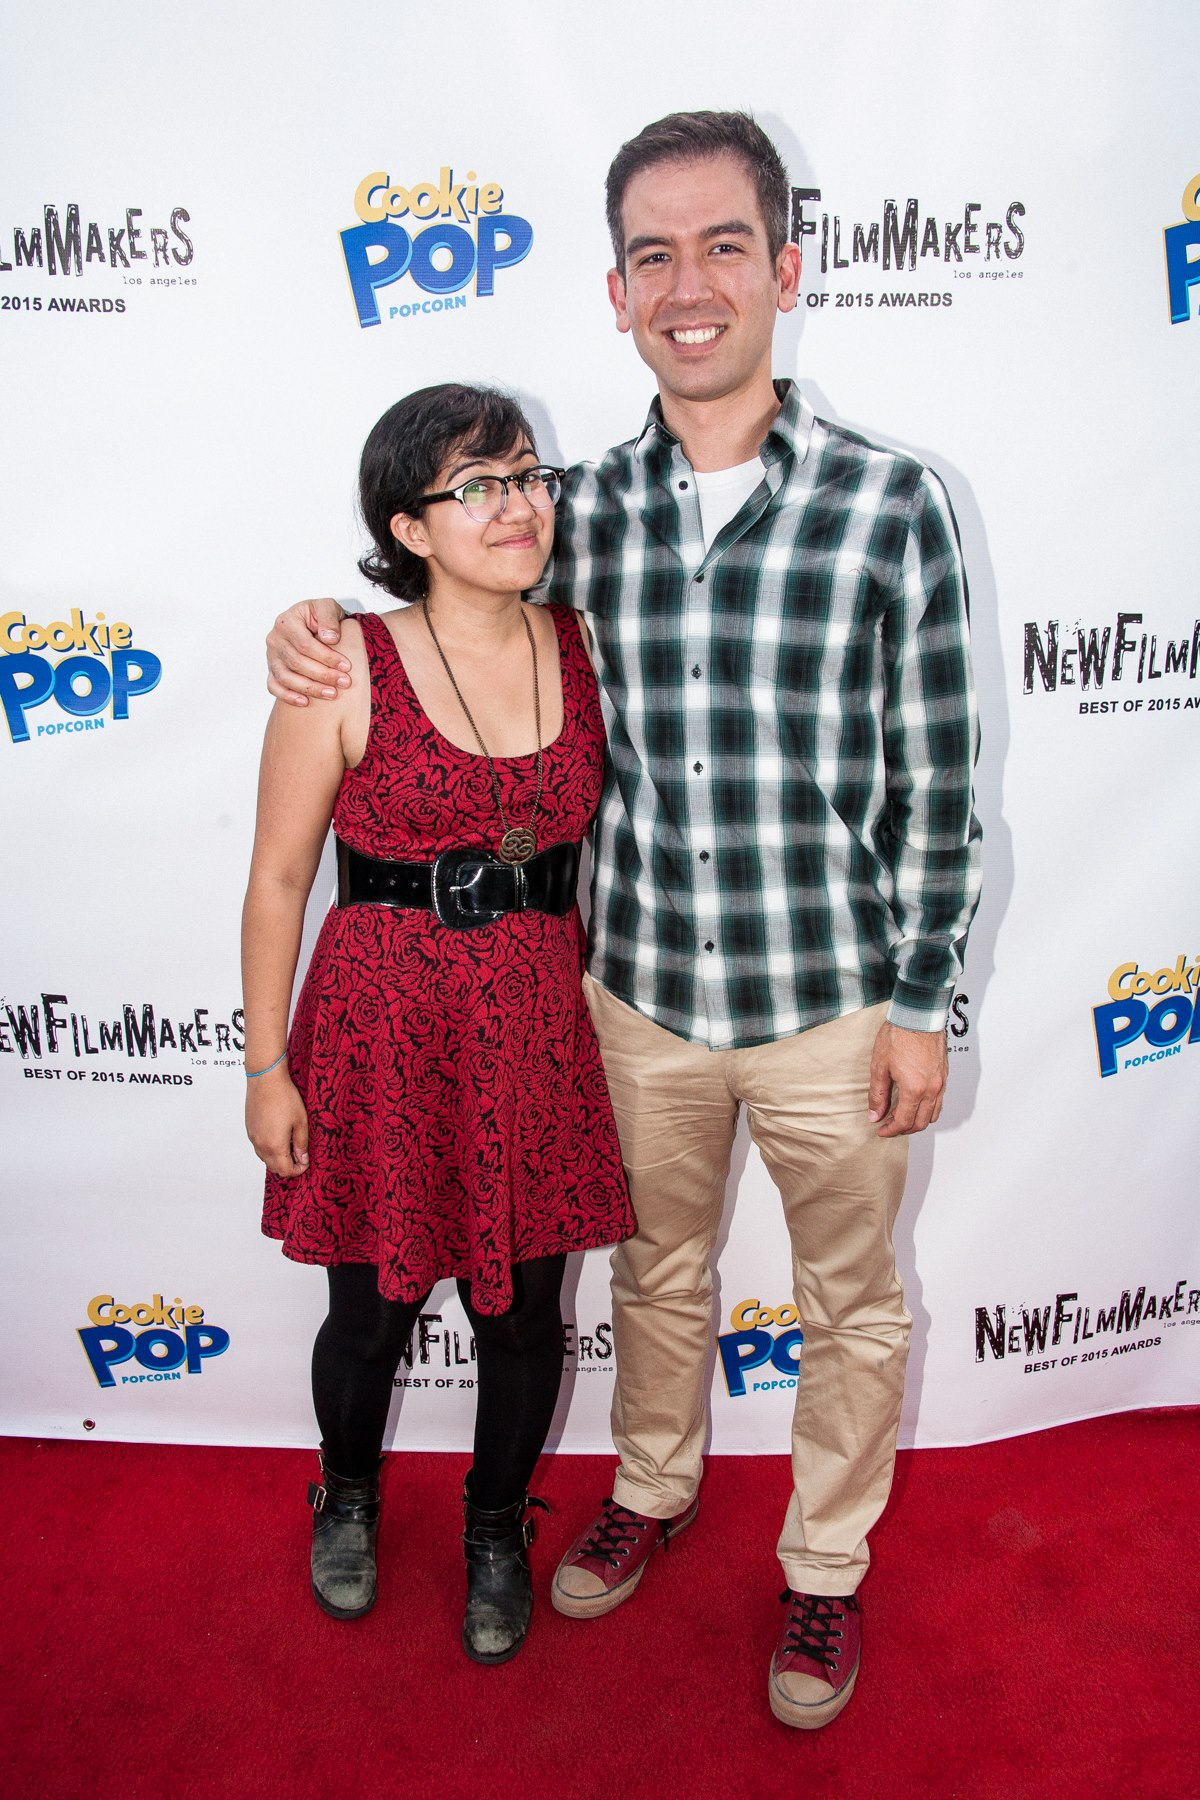 Red Carpet NFMLA New Filmmakers